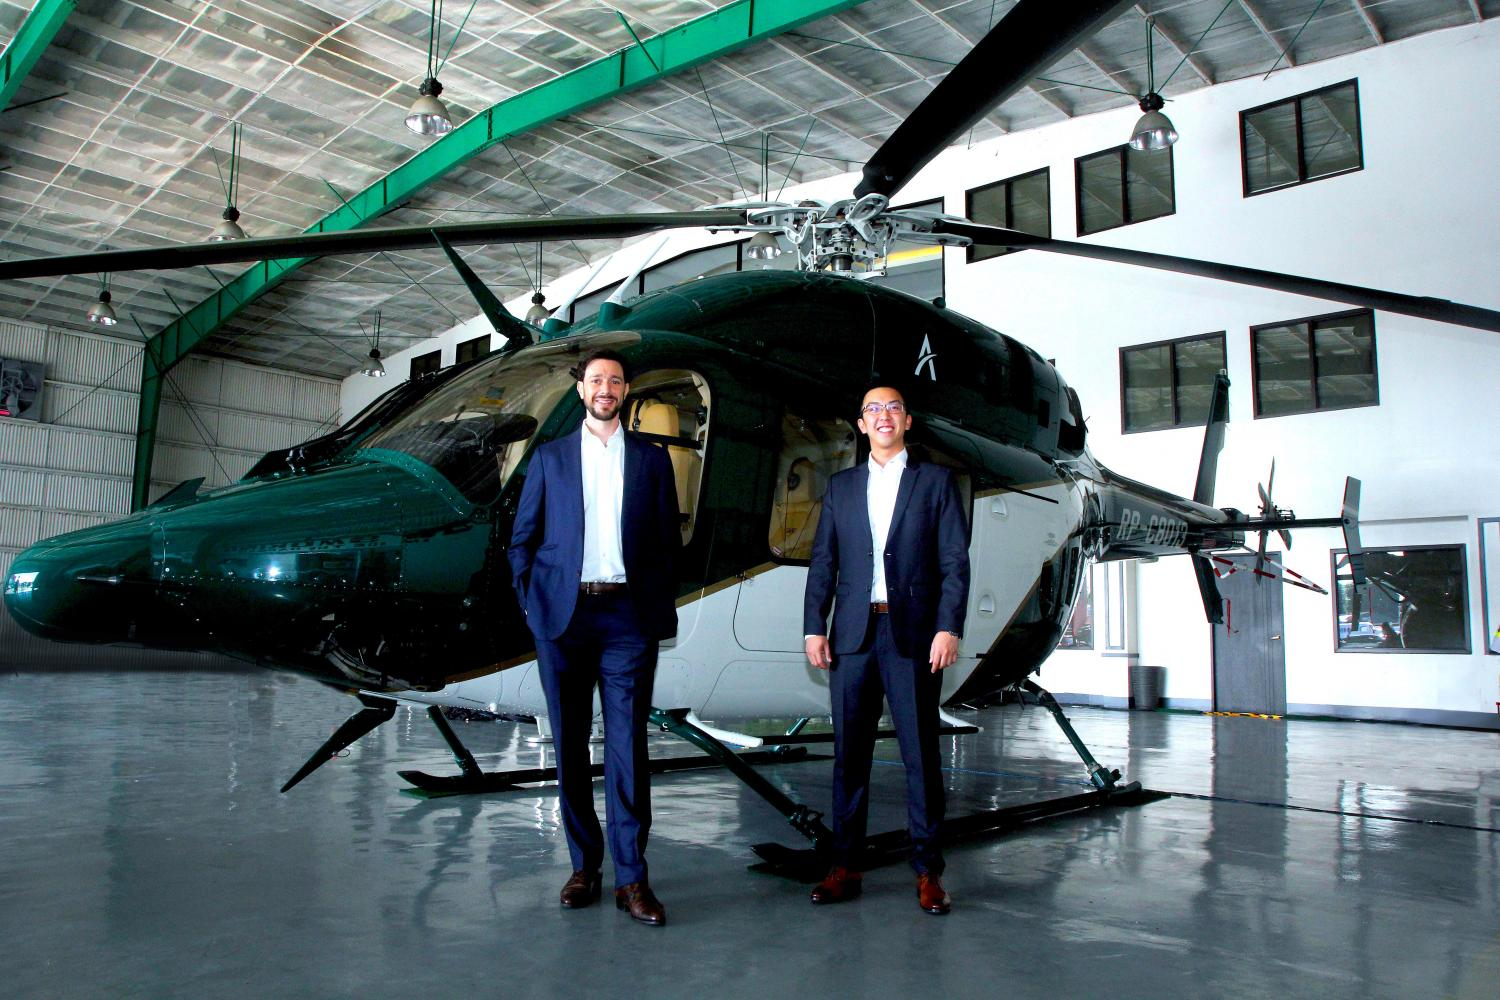 Ascent Asia co-founders Lionel Sinai-Sinelnikoff and Darren T'ng.